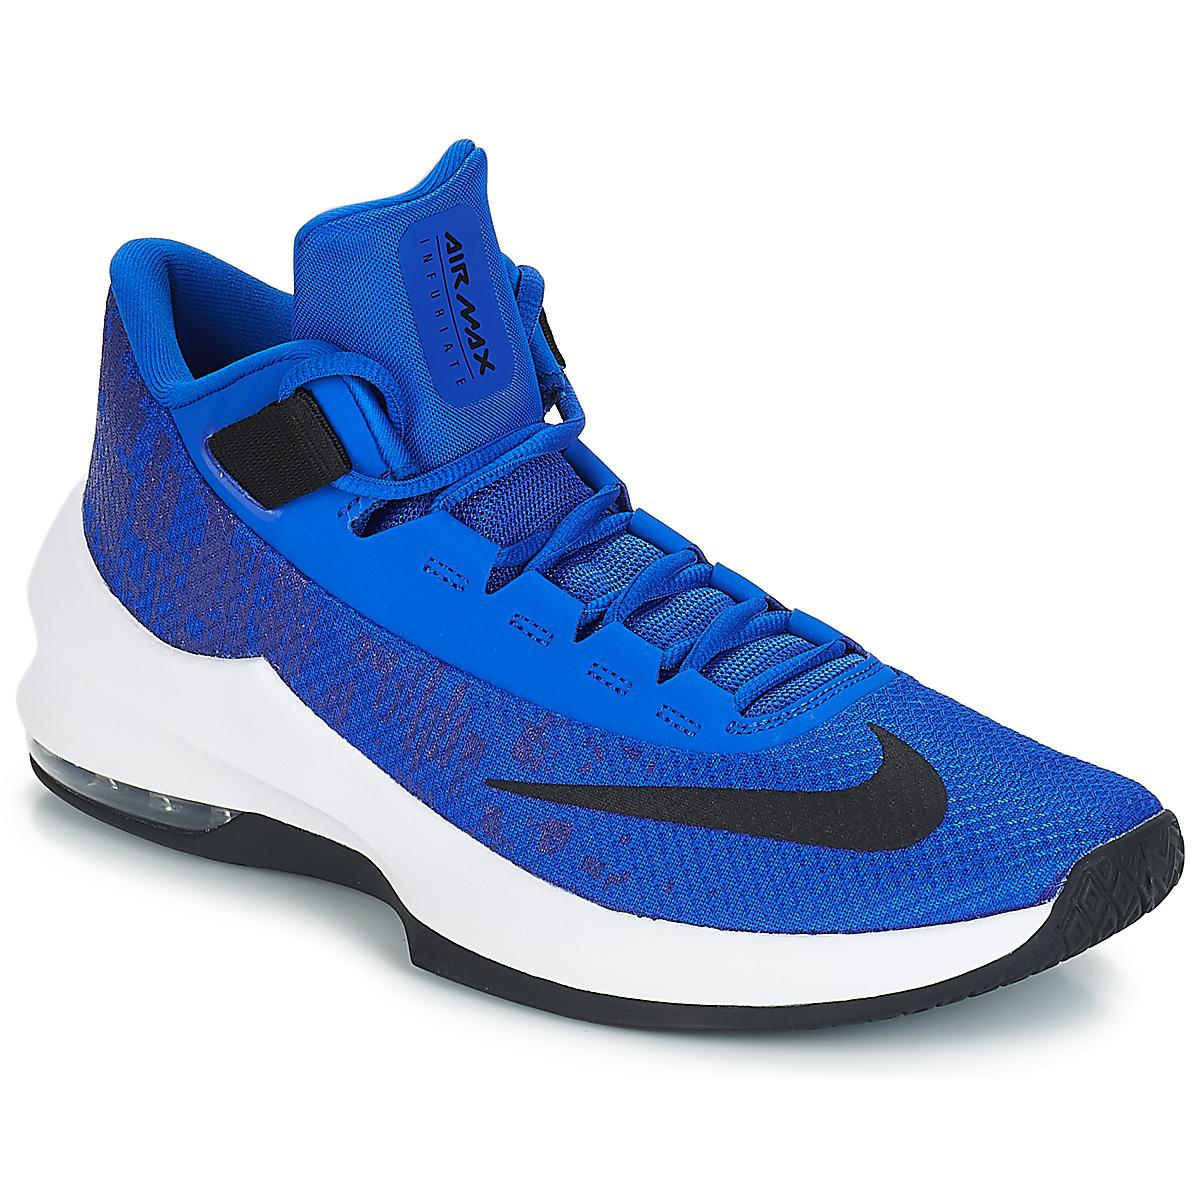 6f2a2655ae Nike Air Max Infuriate 2 Mid Basketball Trainers (shoes) in Blue for ...